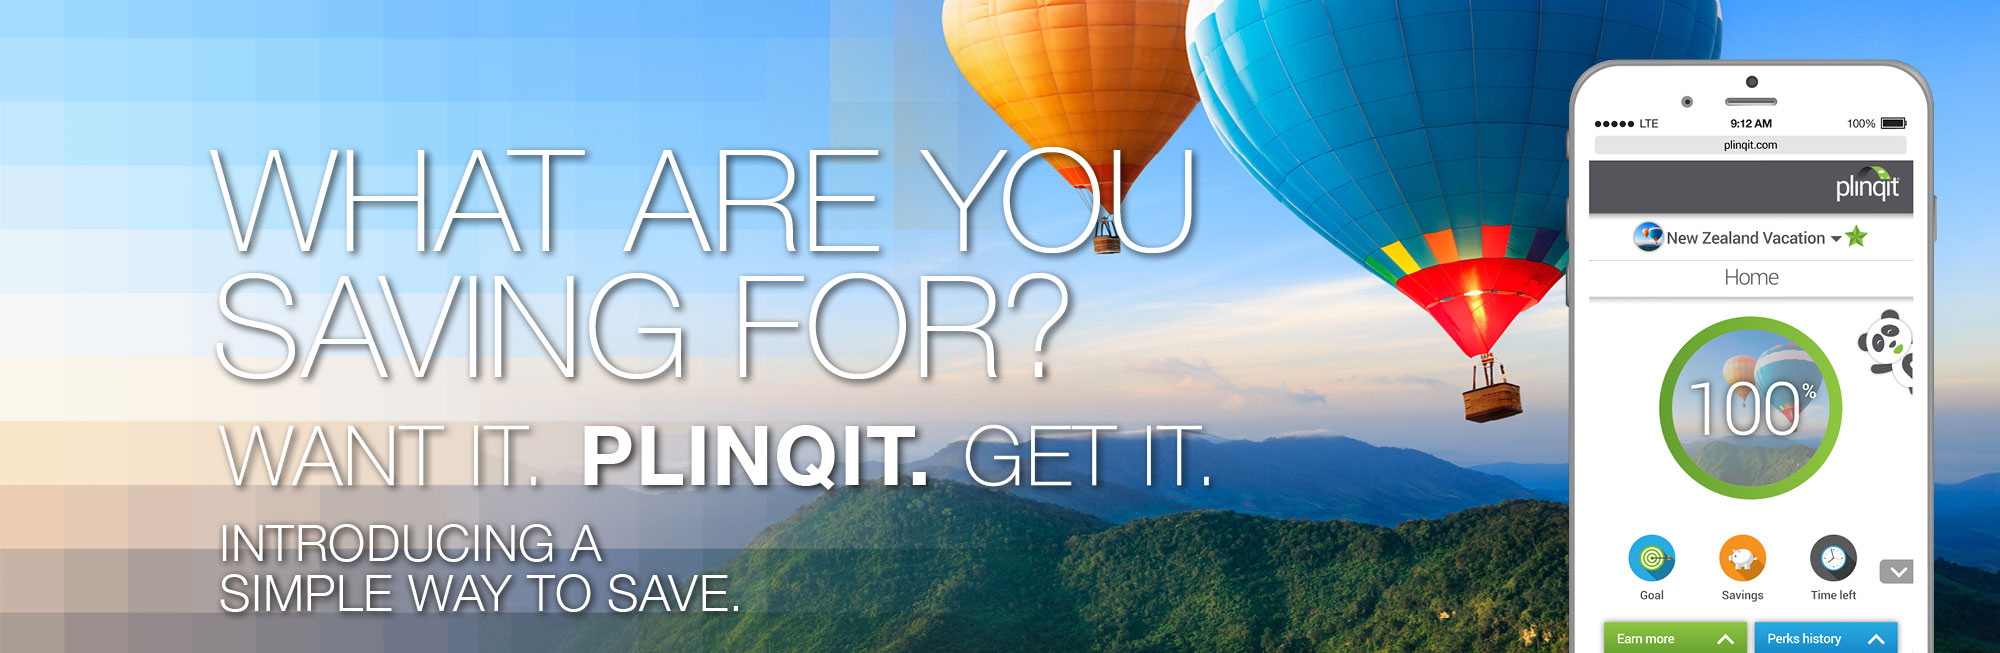 Introducing a simple way to save. What are you saving for? Want it. Plinqit. Get it.